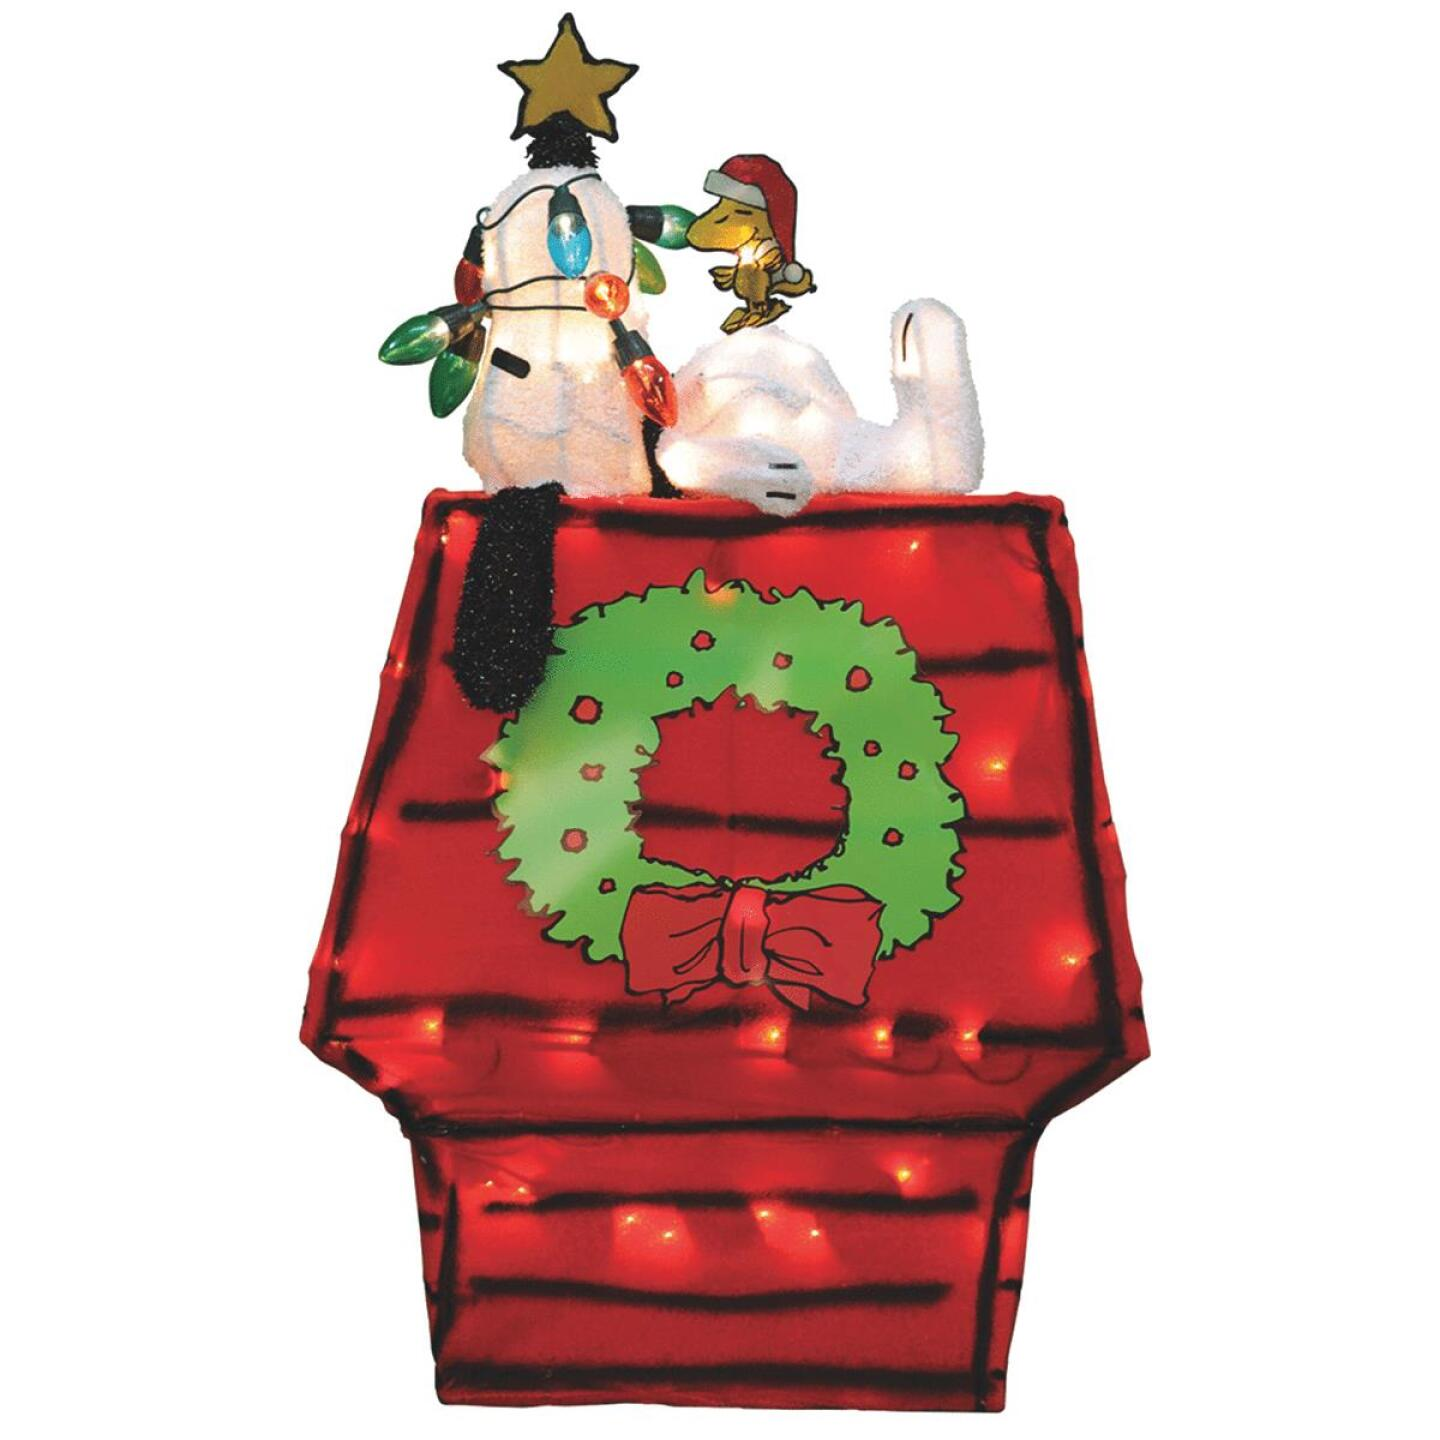 Product Works Peanuts 26 In. Incandescent Snoopy & Dog House Holiday Figure Image 1